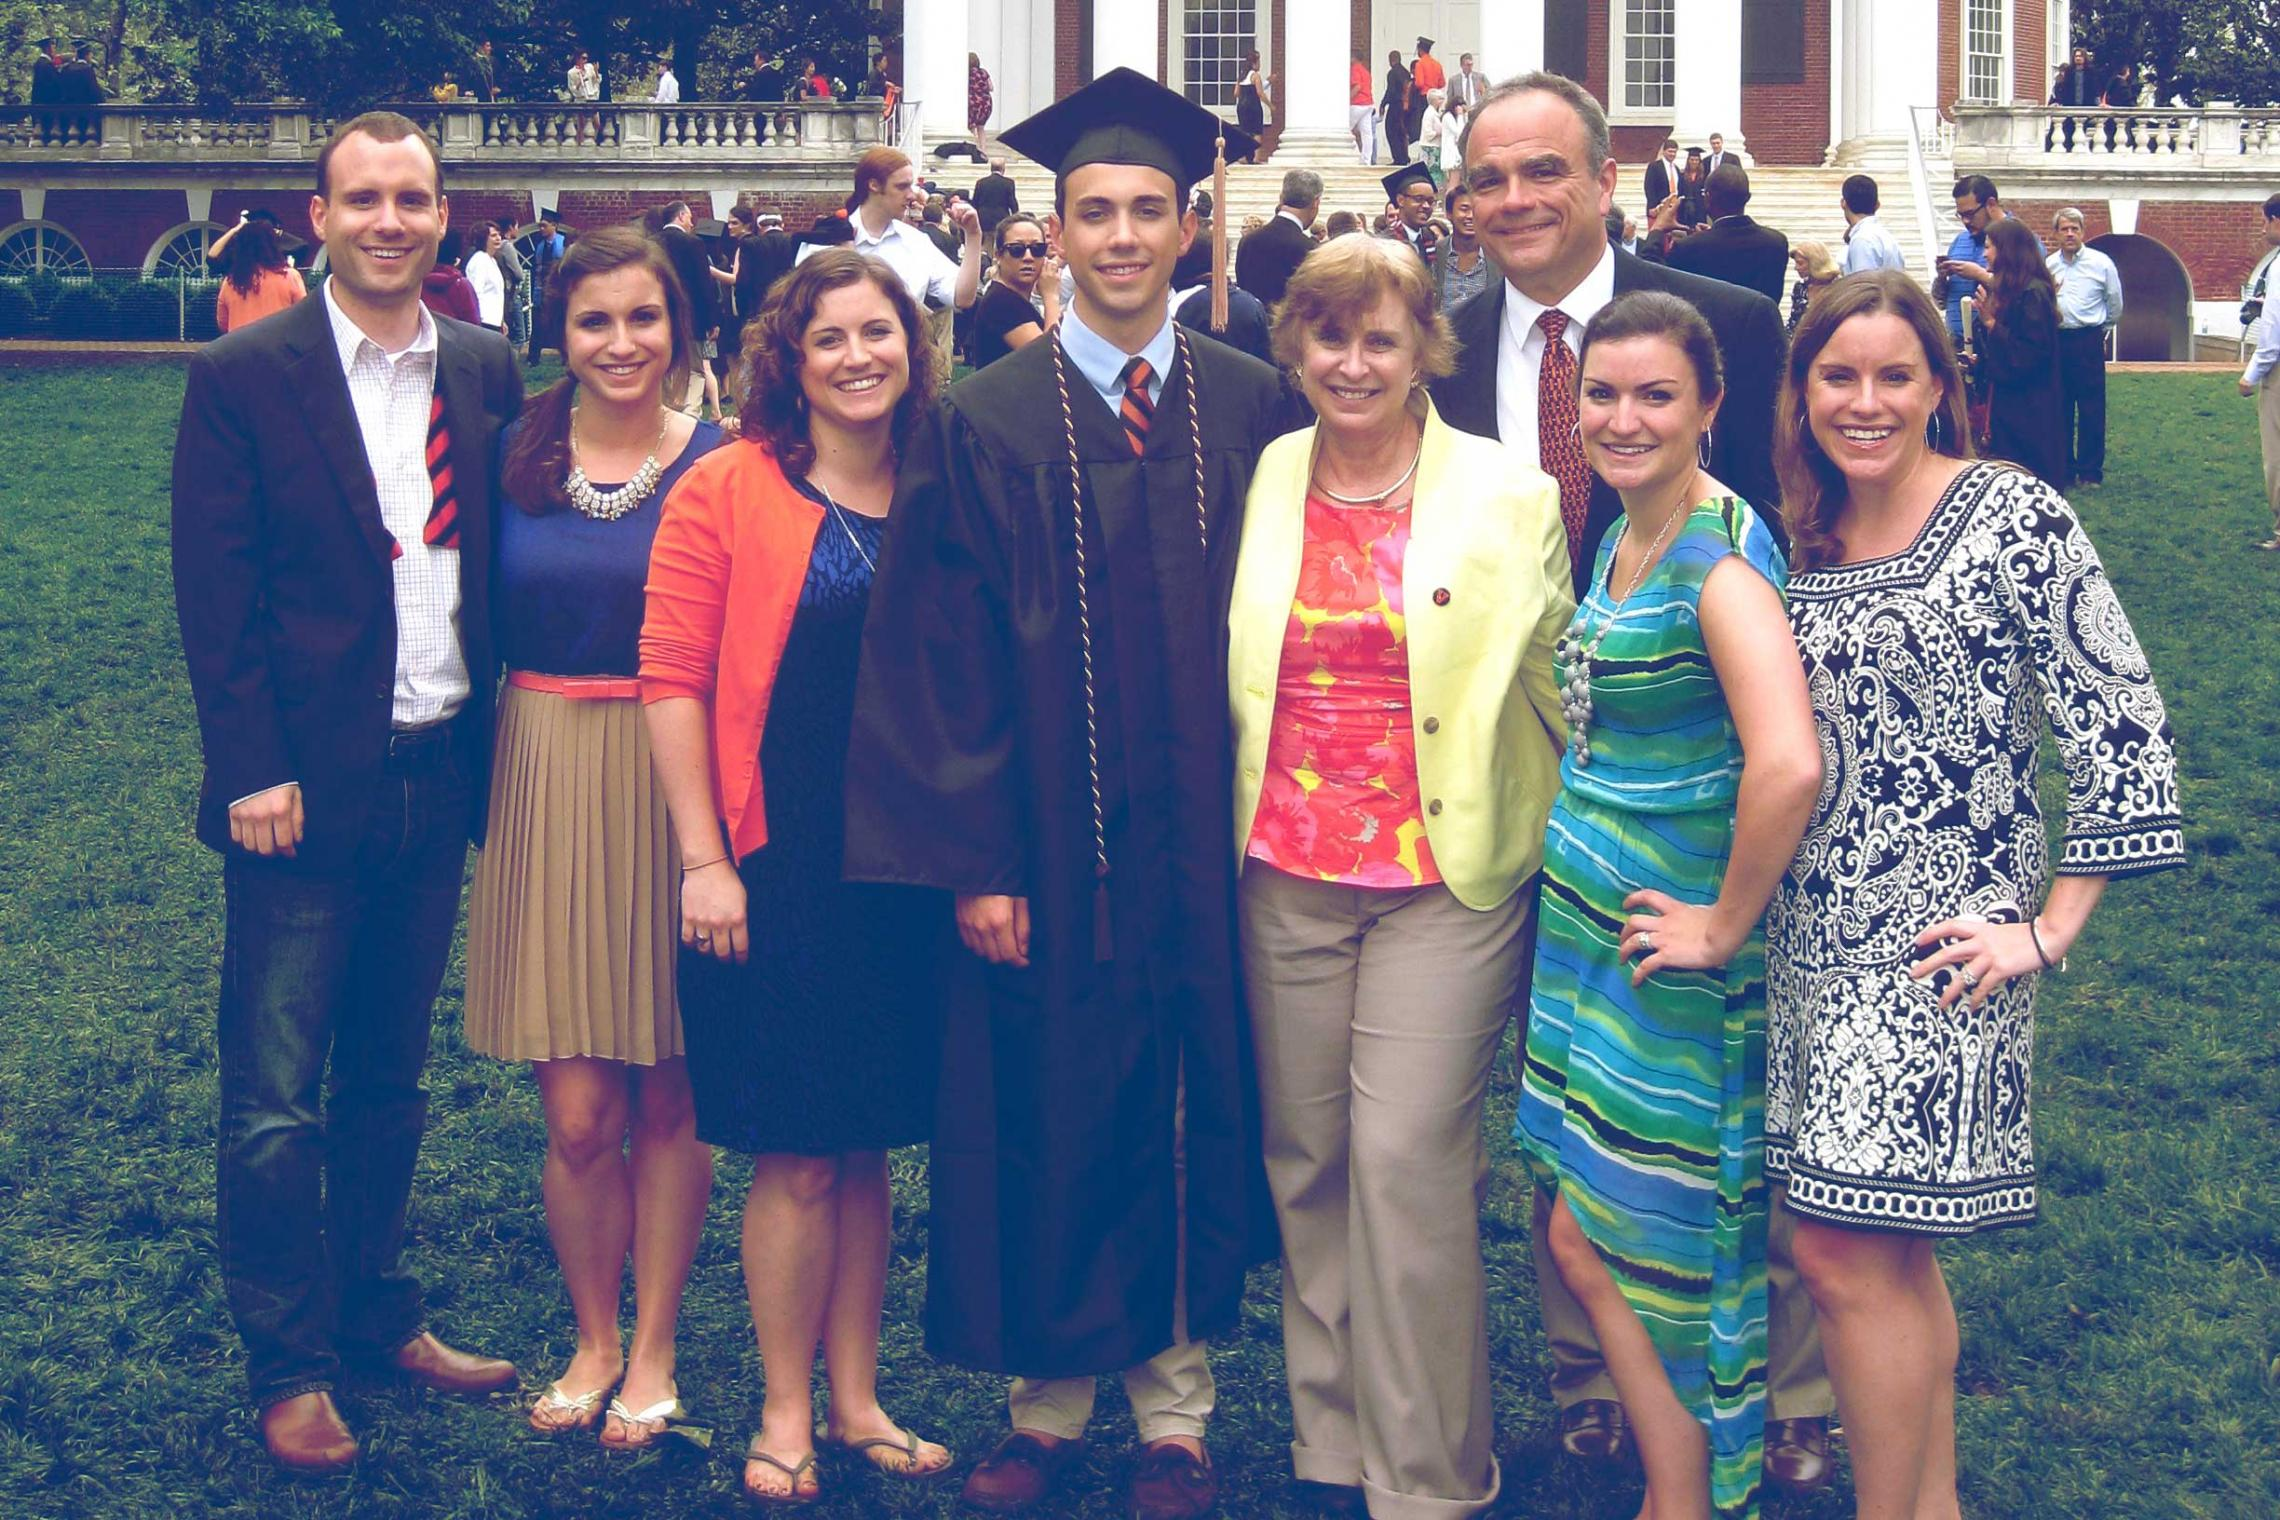 The whole Harris family, from left to right, Greg, Elizabeth, Julianne, Matthew, Maura, Greg, Kathryn and Kelly.